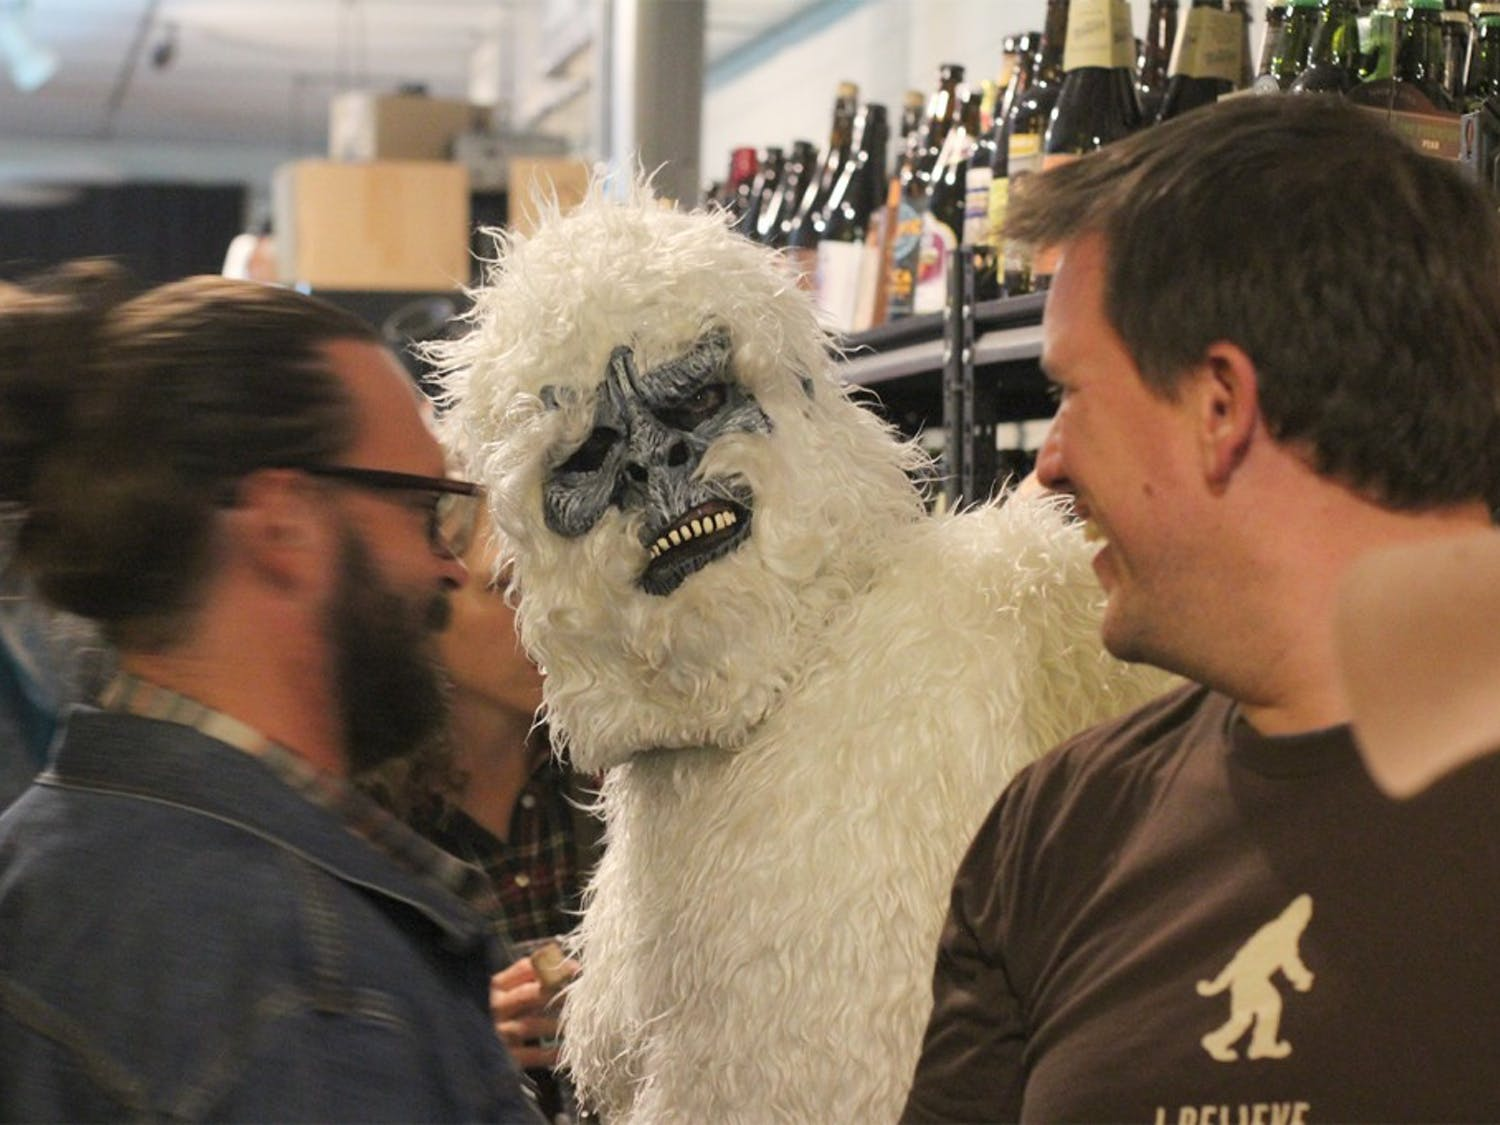 Great Divide Brewing Company mascot the Yeti mingles and guest-bartends at Beer Study as part of the Yeti Bar Crawl in the Chapel Hill-Carrboro area Friday.